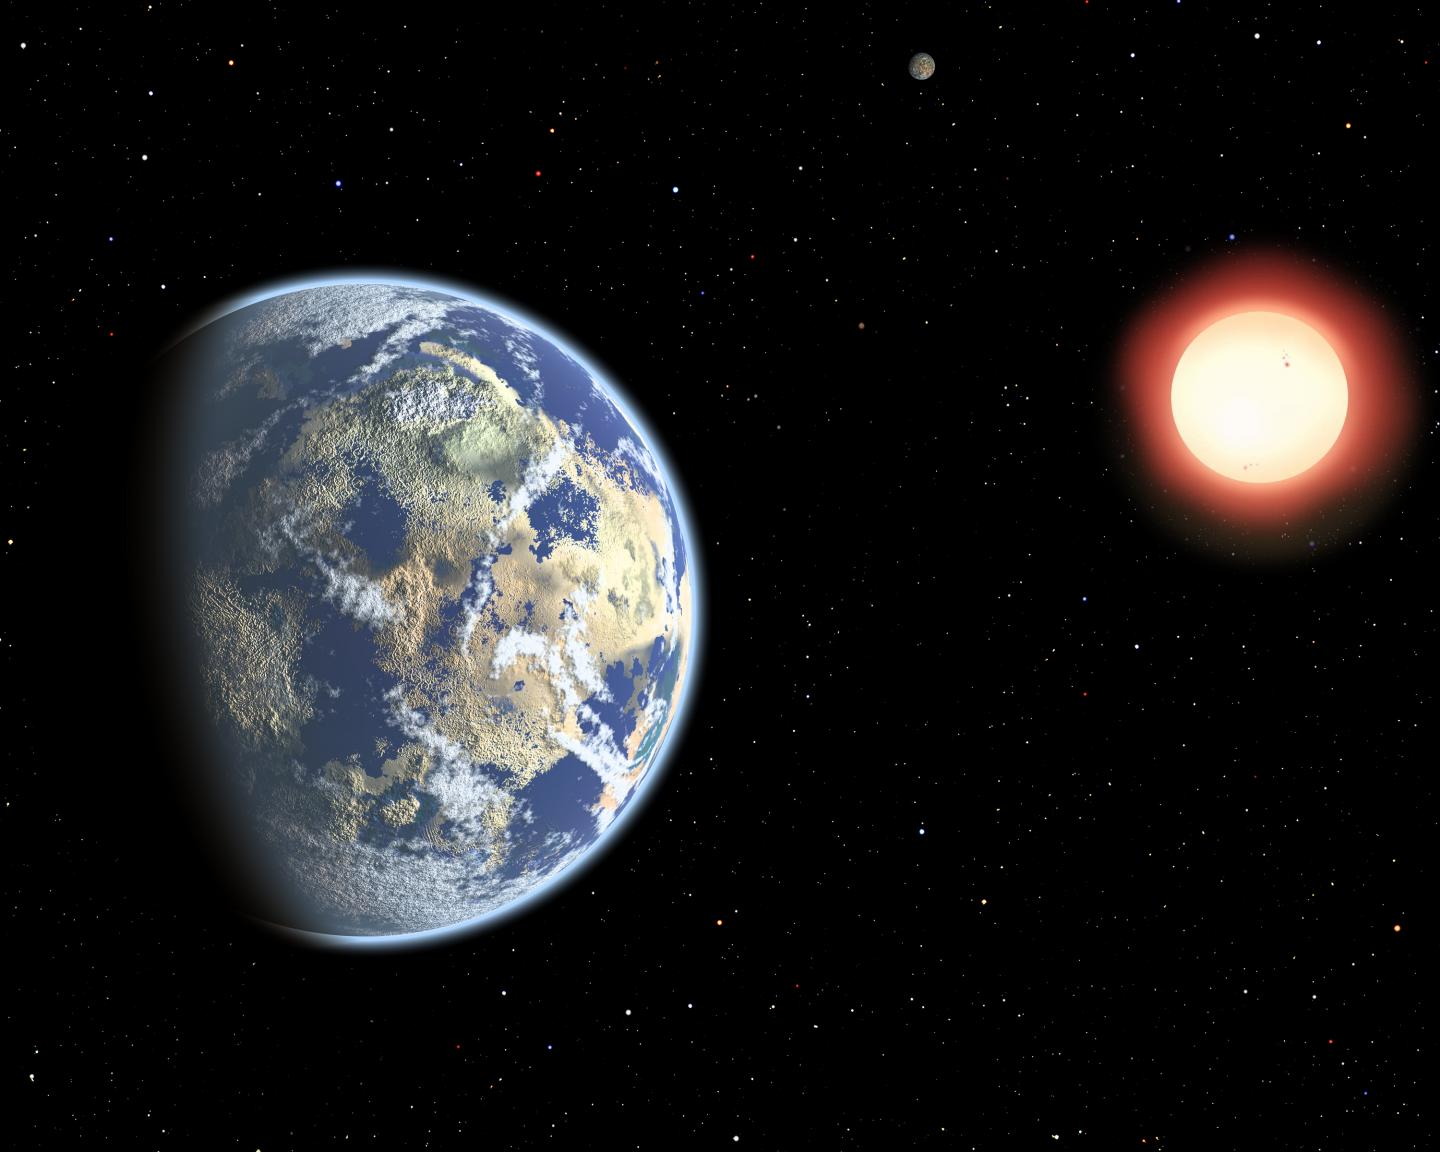 red dwarf earth like planet